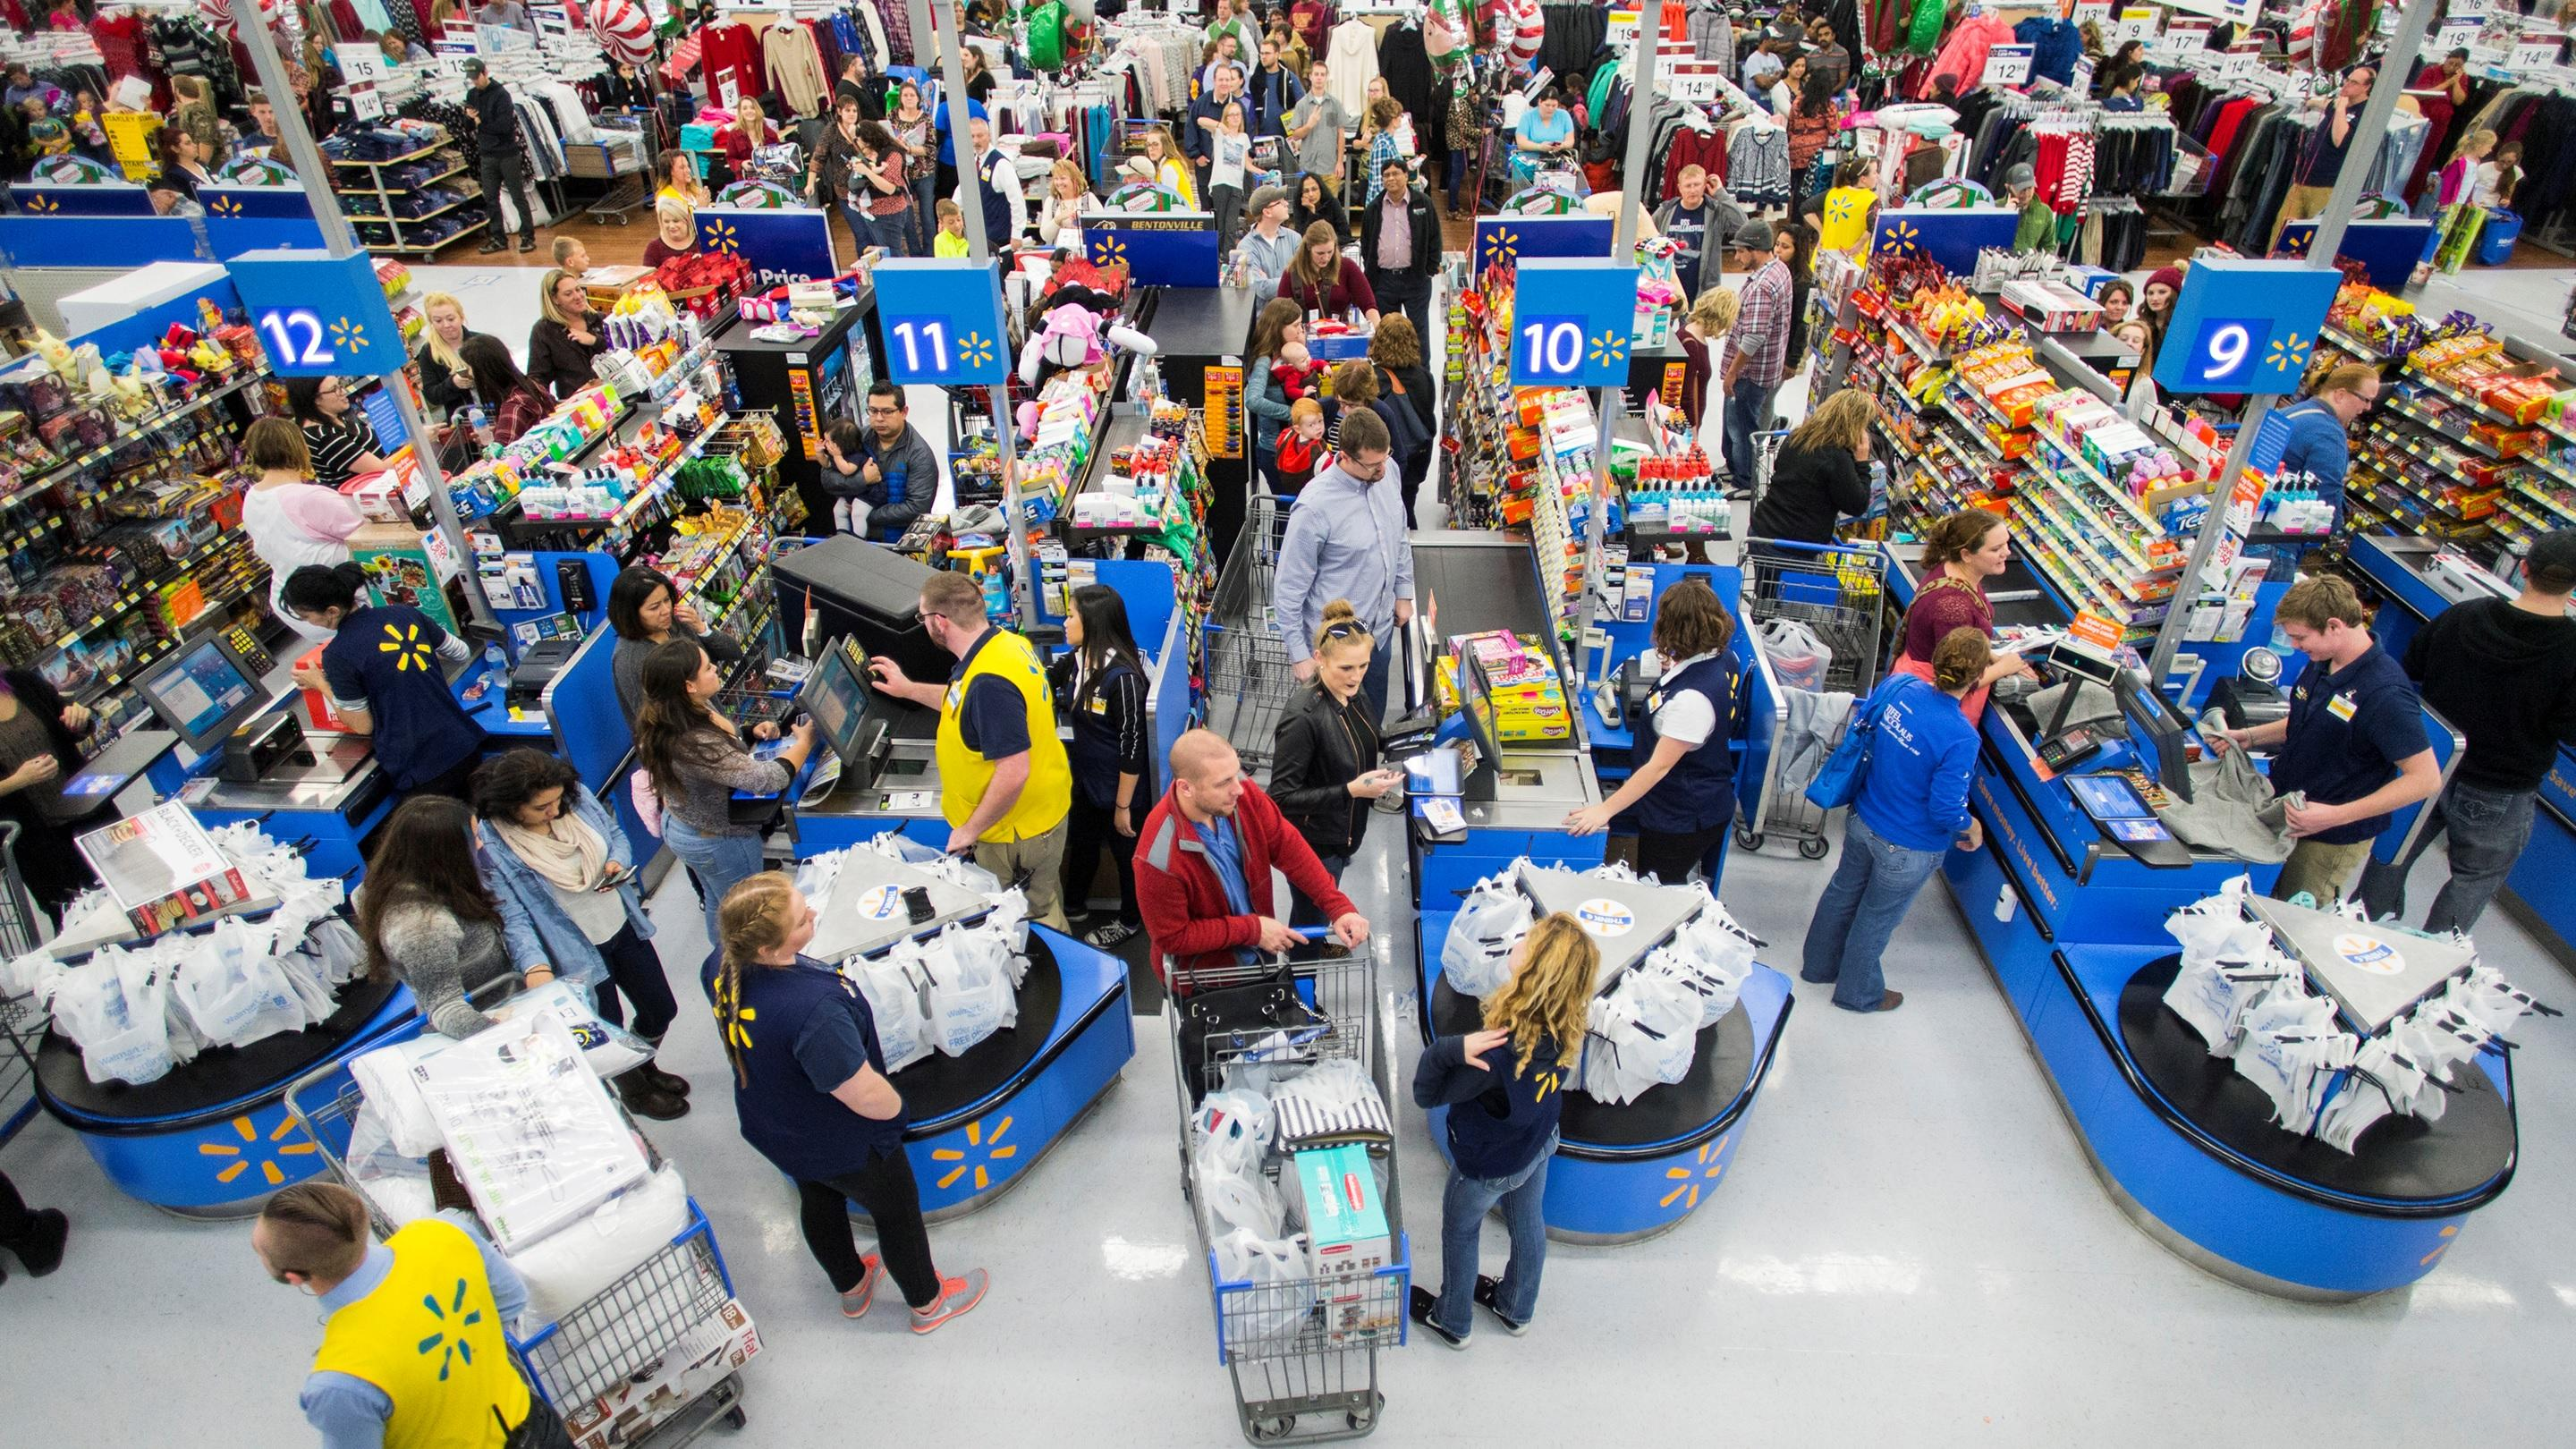 Walmart's second quarter earnings beat expectations